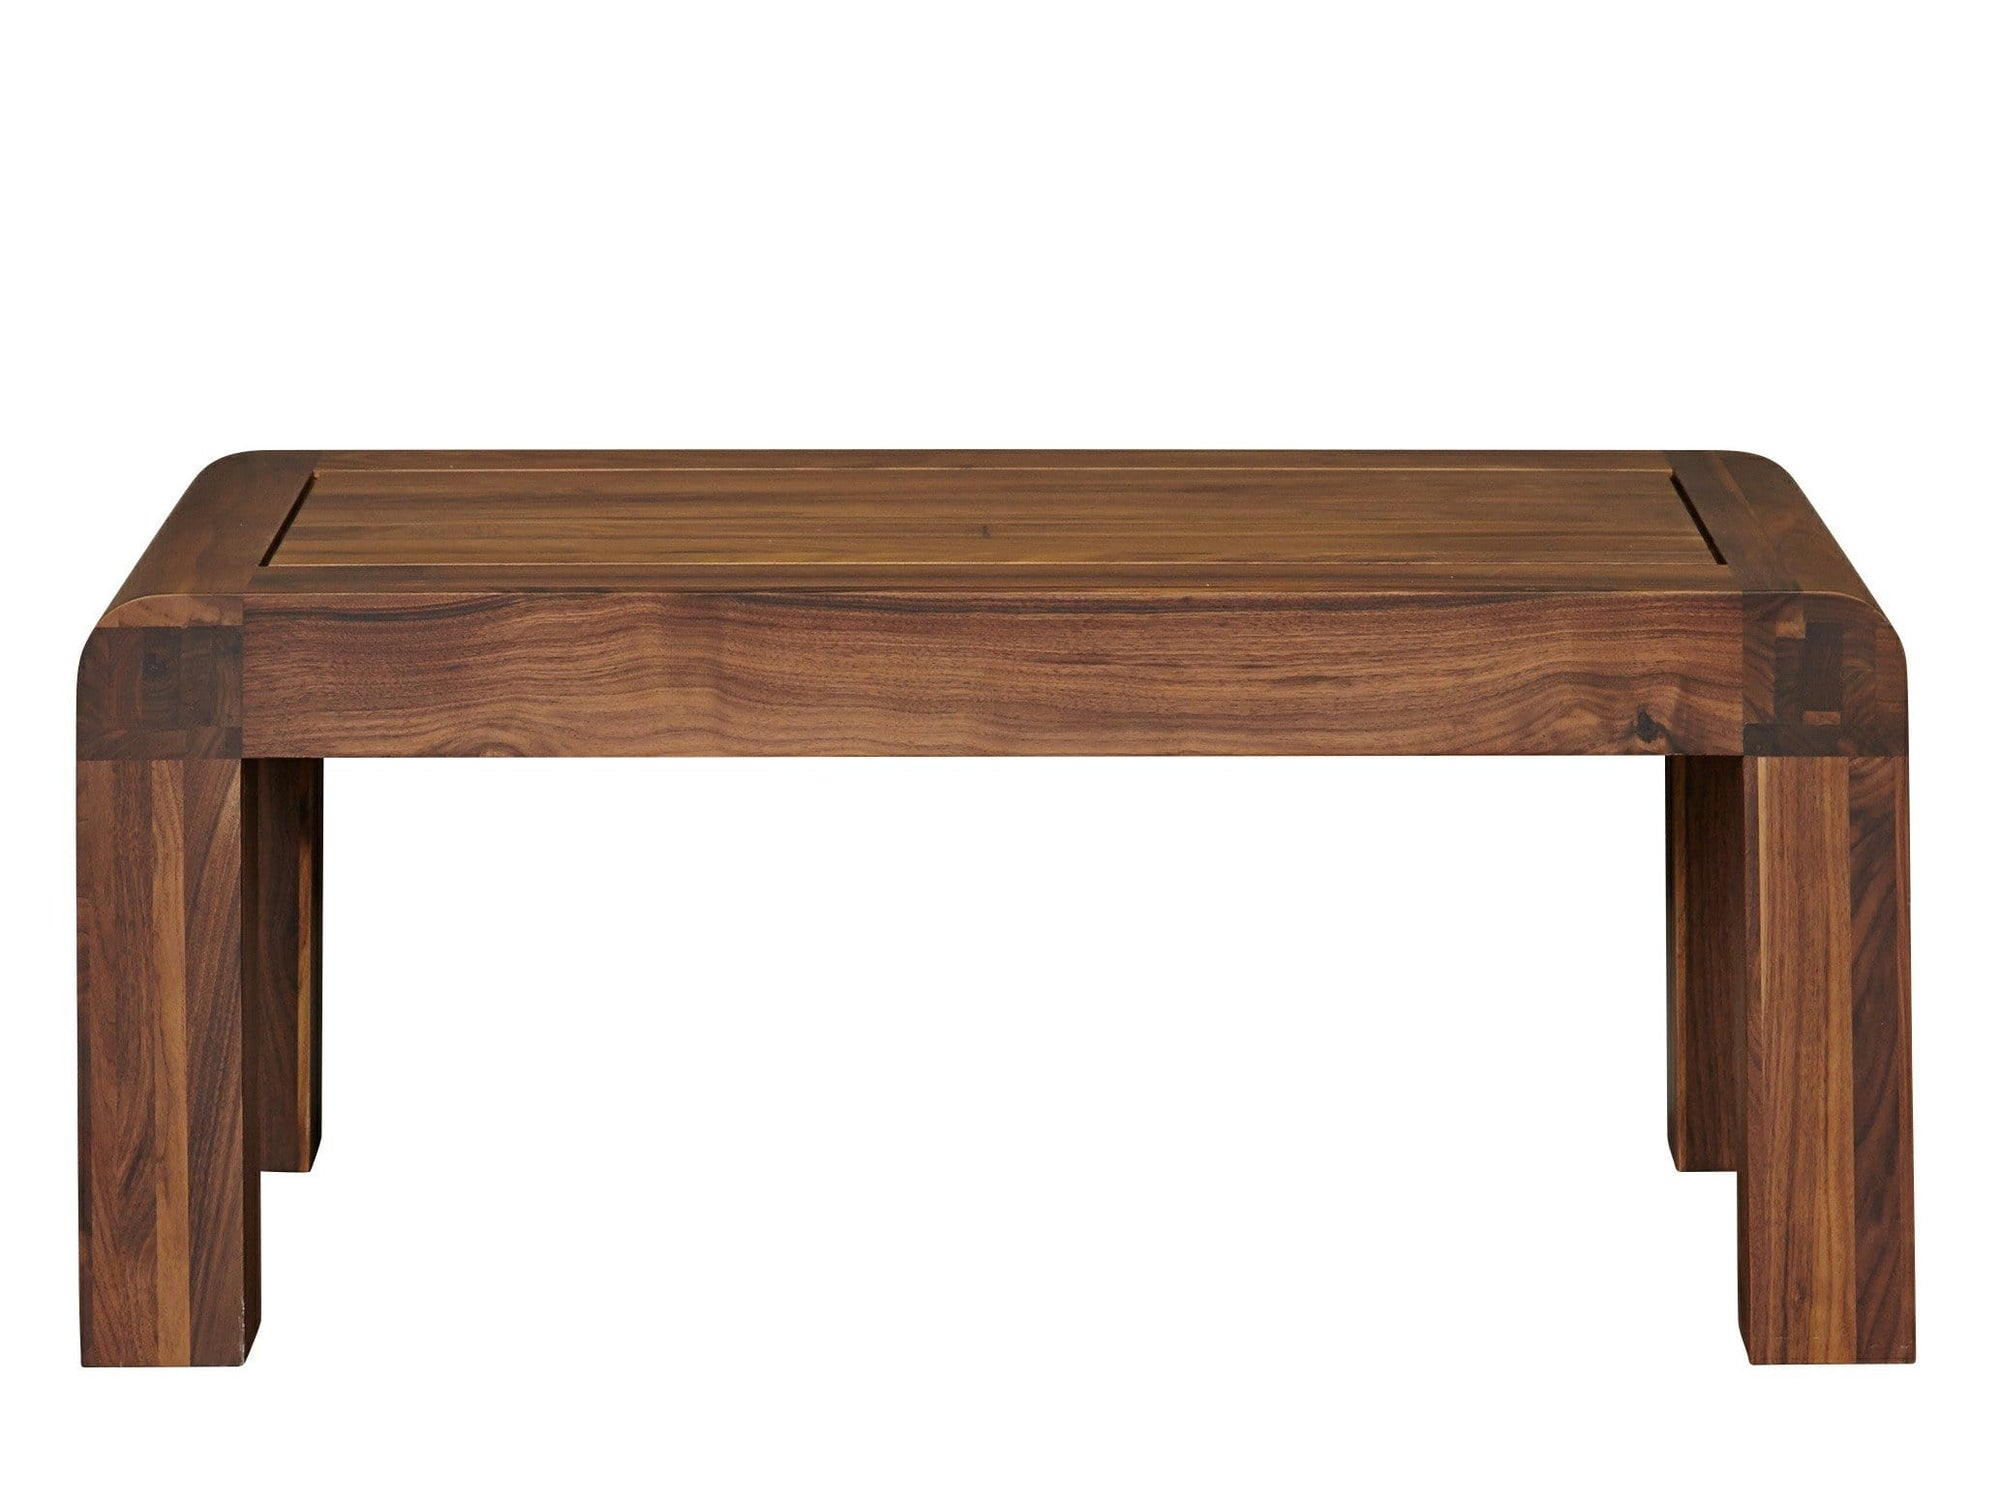 Dark wood coffee table with curved corners